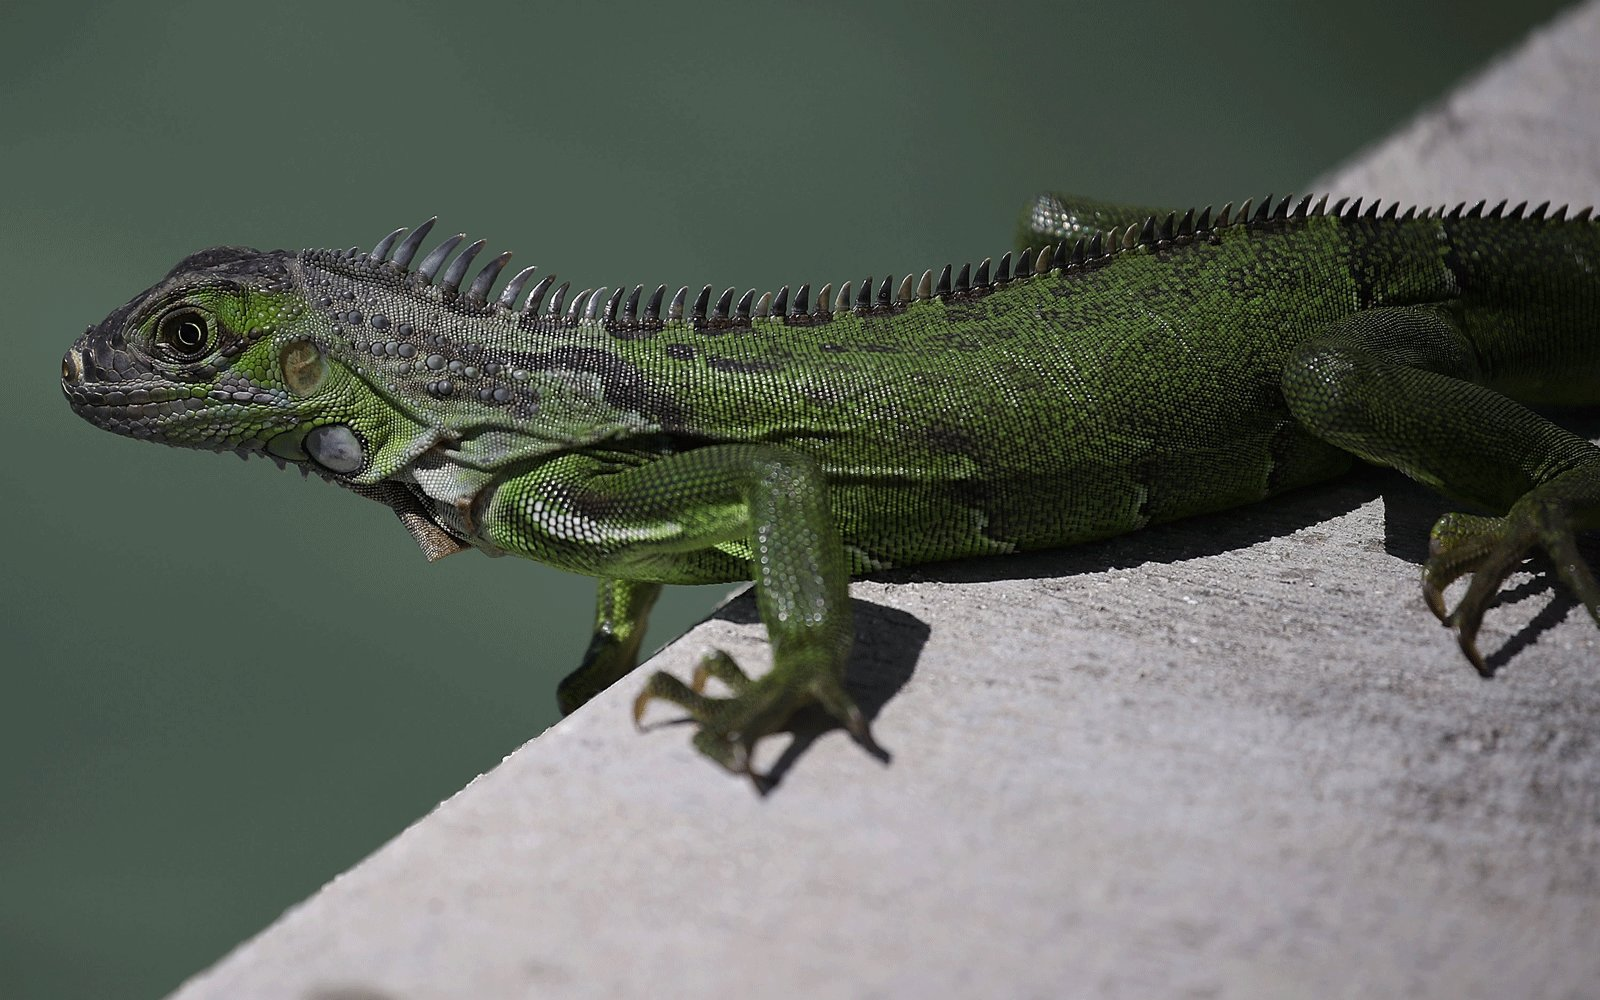 """A """"falling iguana"""" alert was issued in Florida this week. Here's why:"""